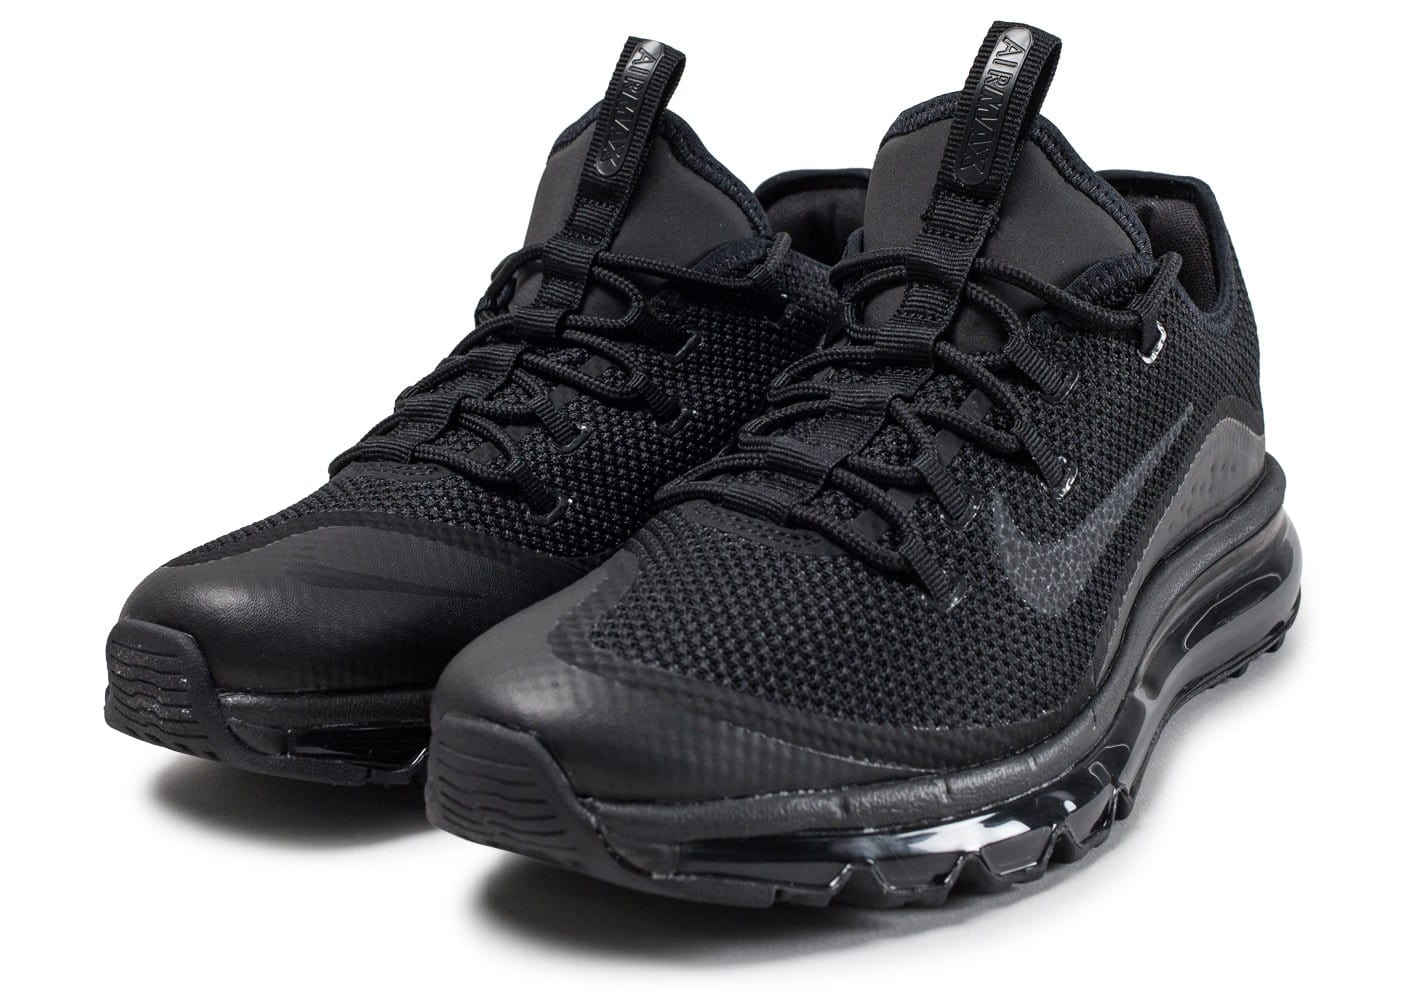 Nike Air Max More Triple Black Chaussures Baskets homme